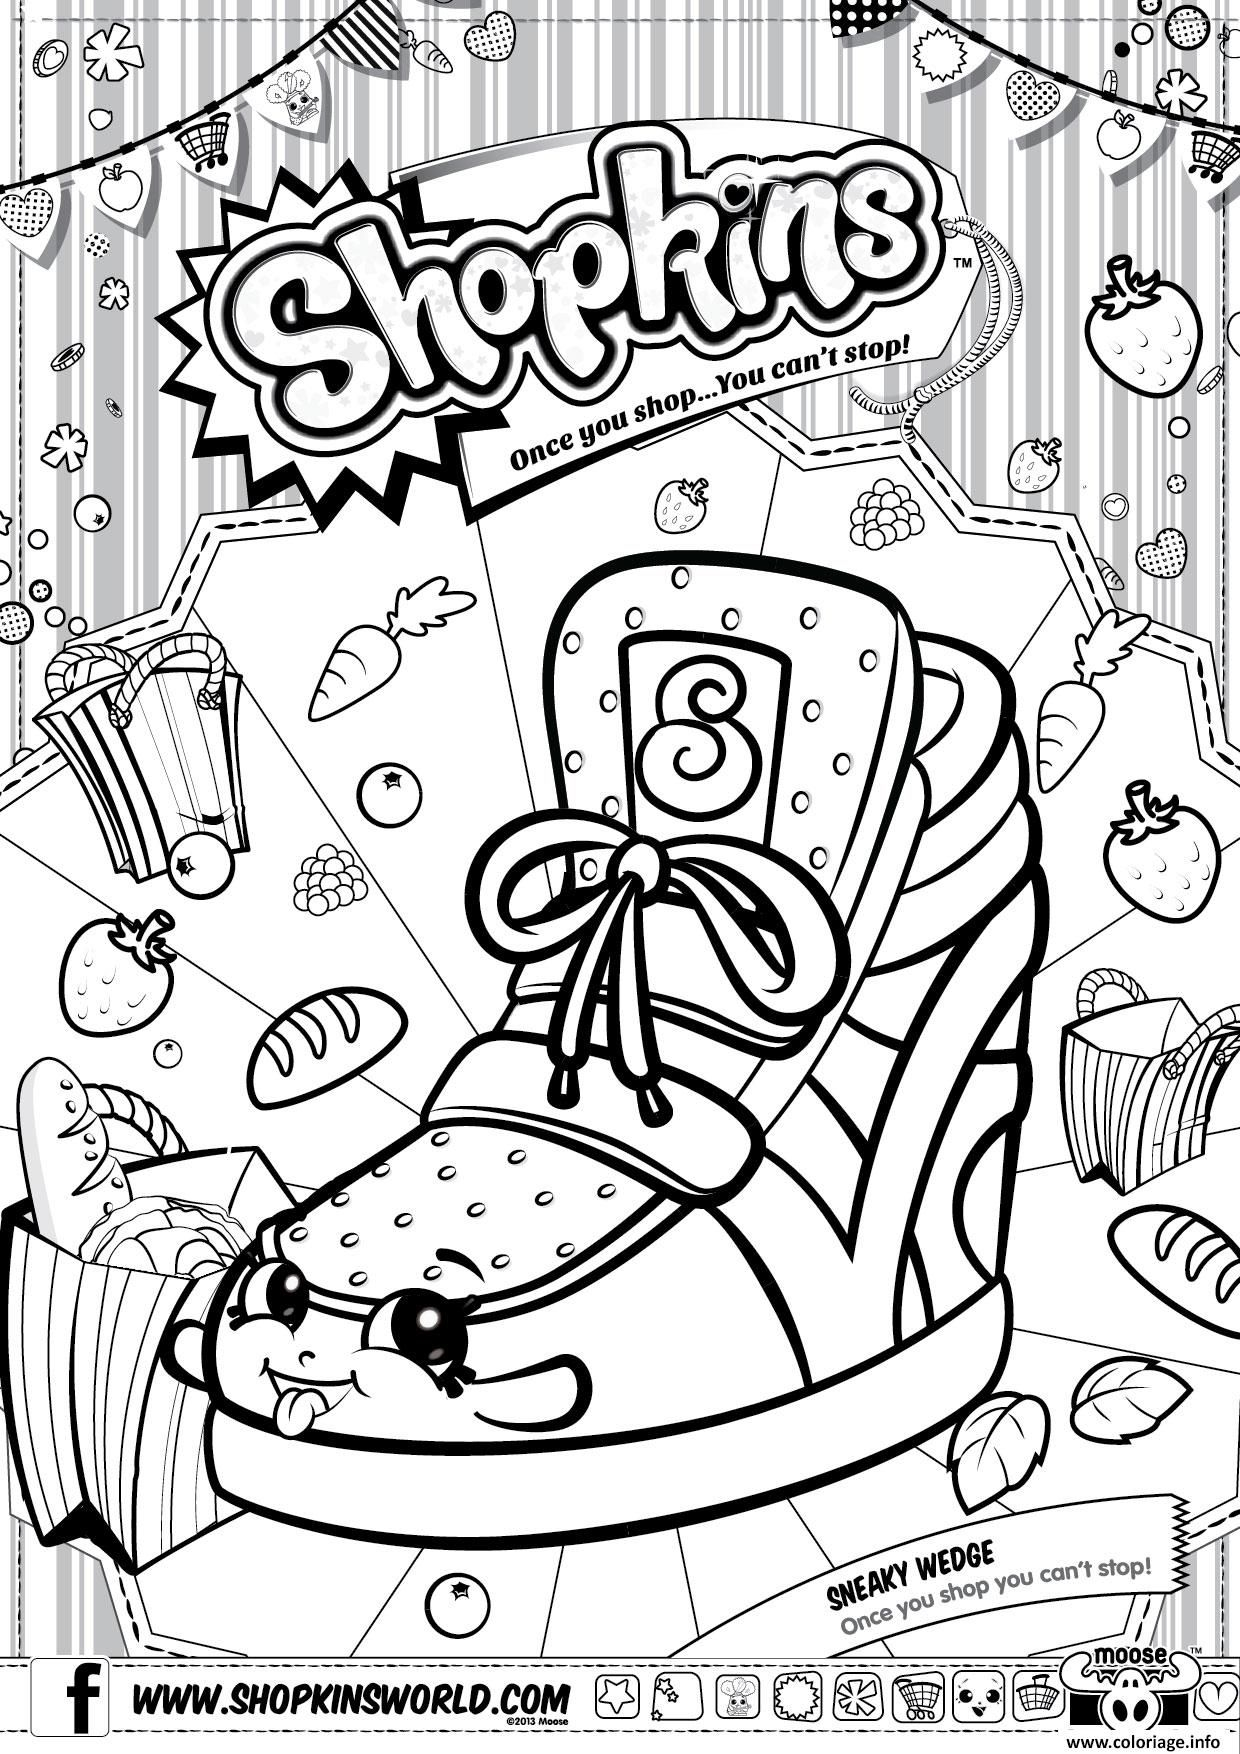 1240x1754 New Cake Wishes Shopkins Coloring Page Free Coloring Pages Line